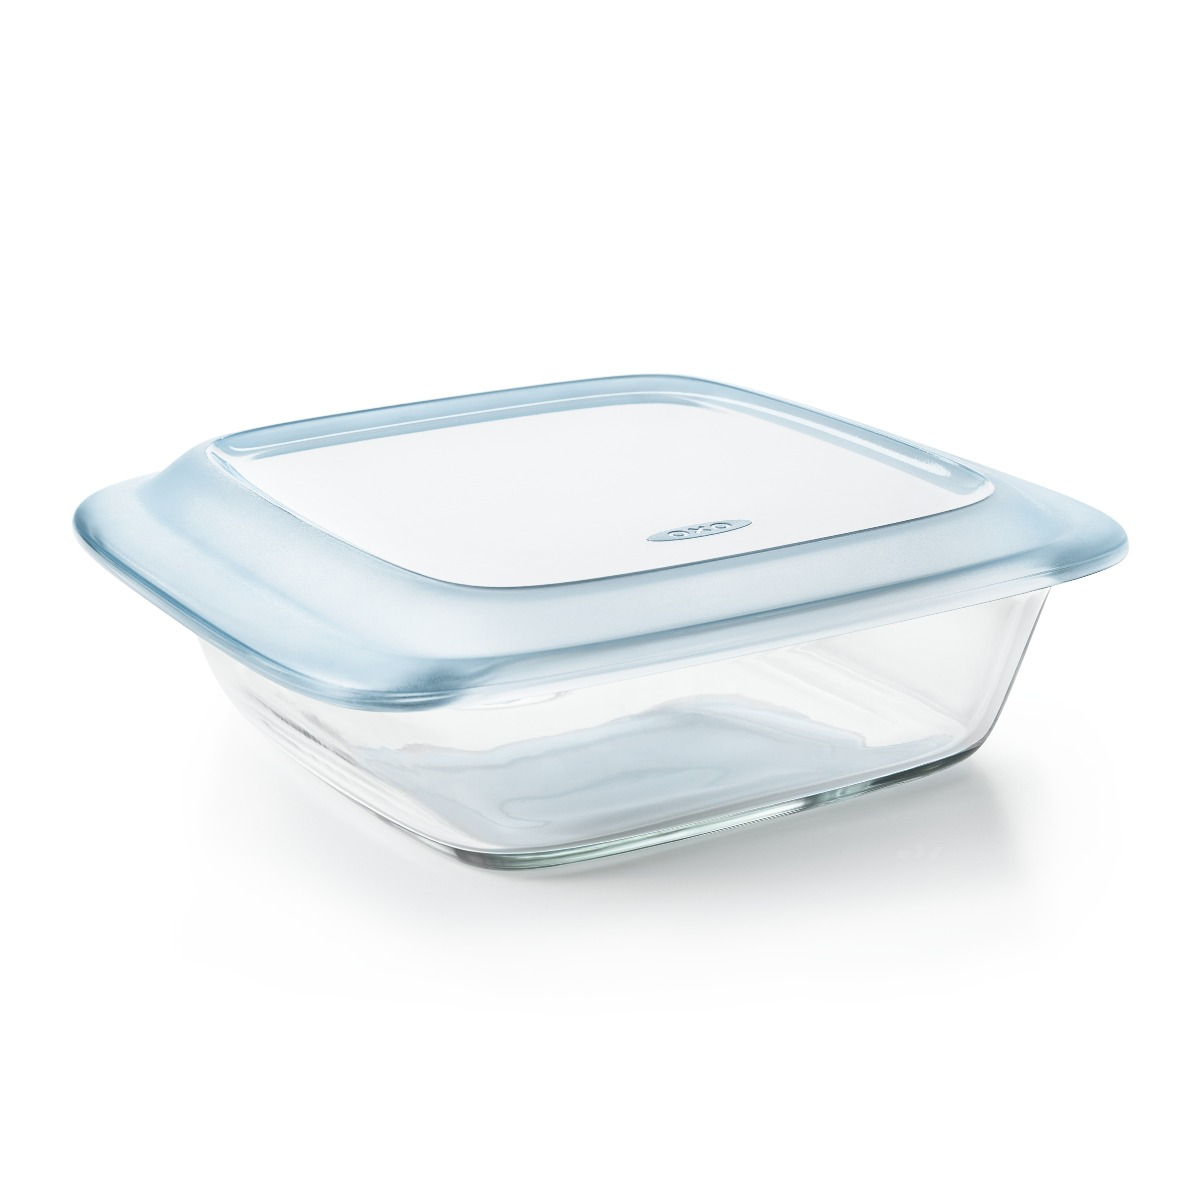 Glass Baking Dish with Lid (2.0 Qt)